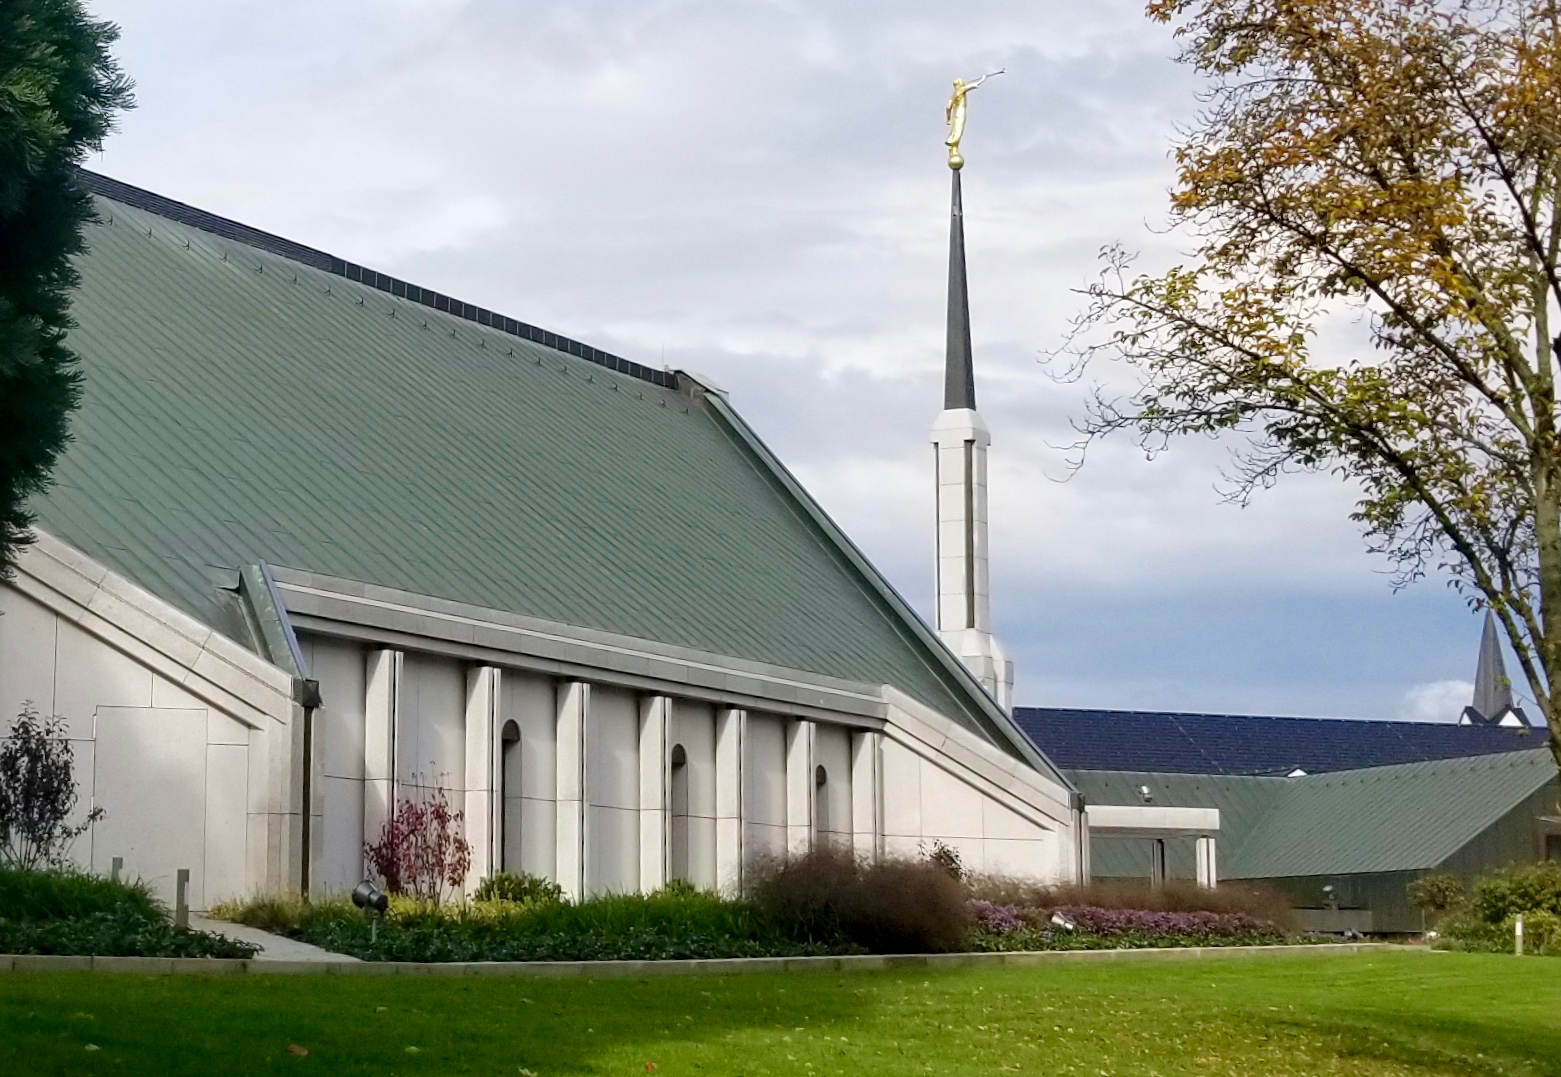 The Frankfurt Germany Temple on Sunday, Oct. 20, 2019, the day of its rededication.